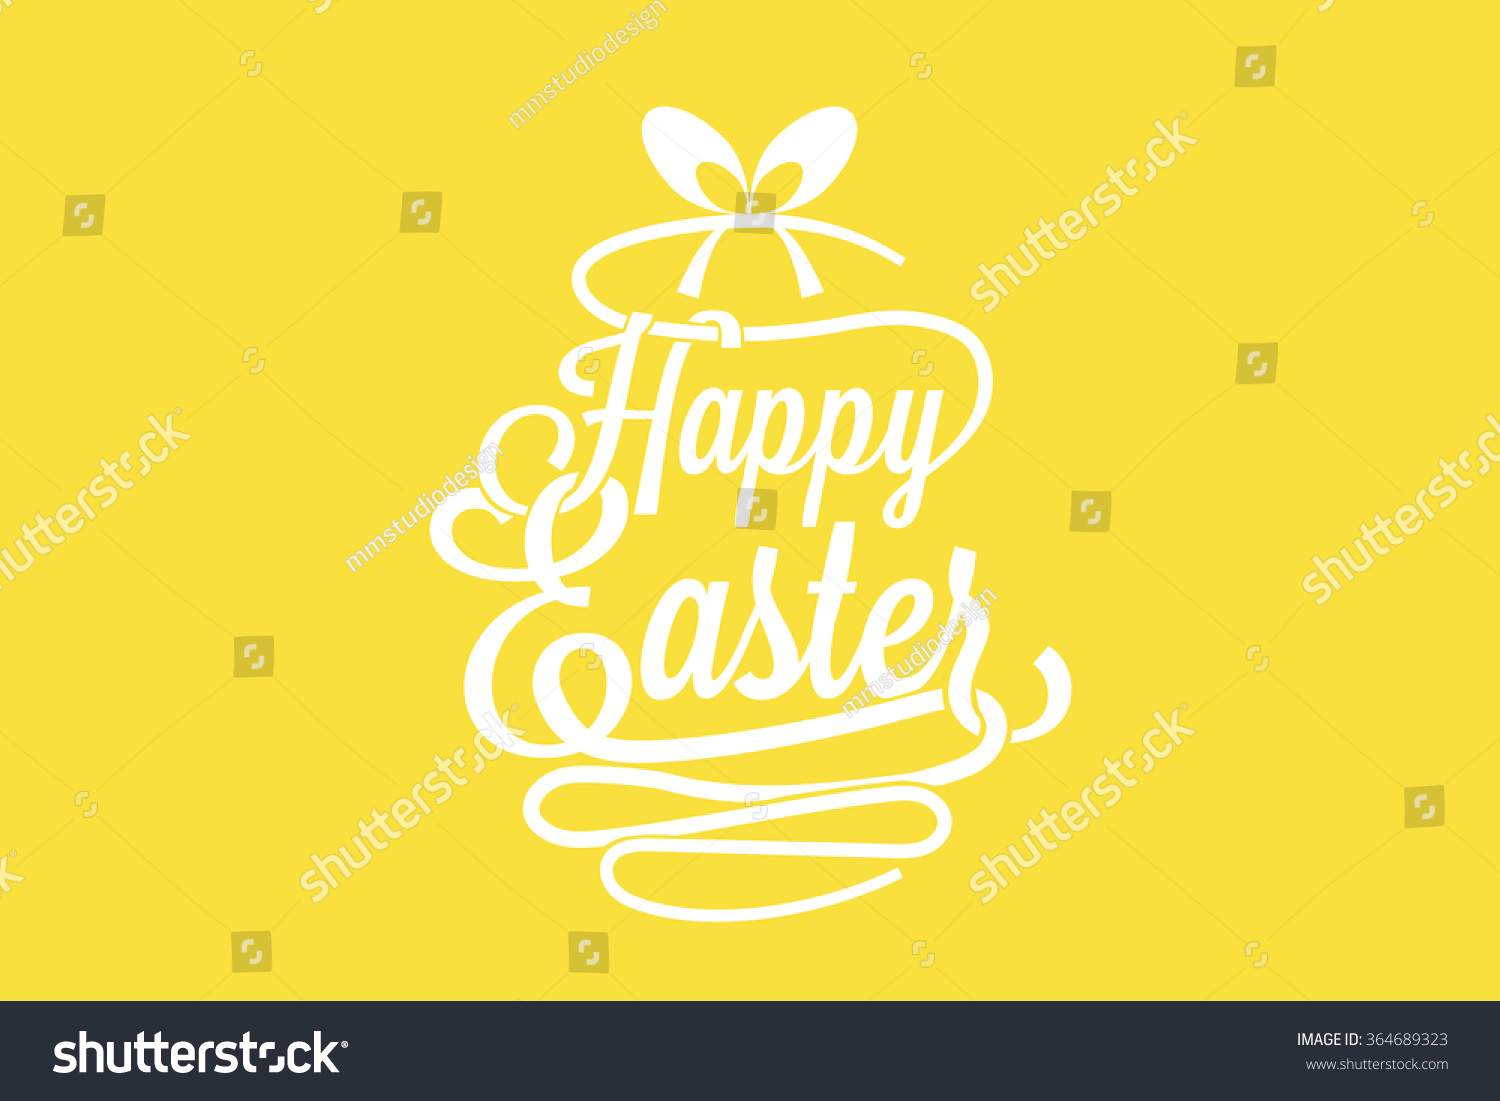 Happy easter greeting card calligraphic words stock vector hd happy easter greeting card with calligraphic words and egg m4hsunfo